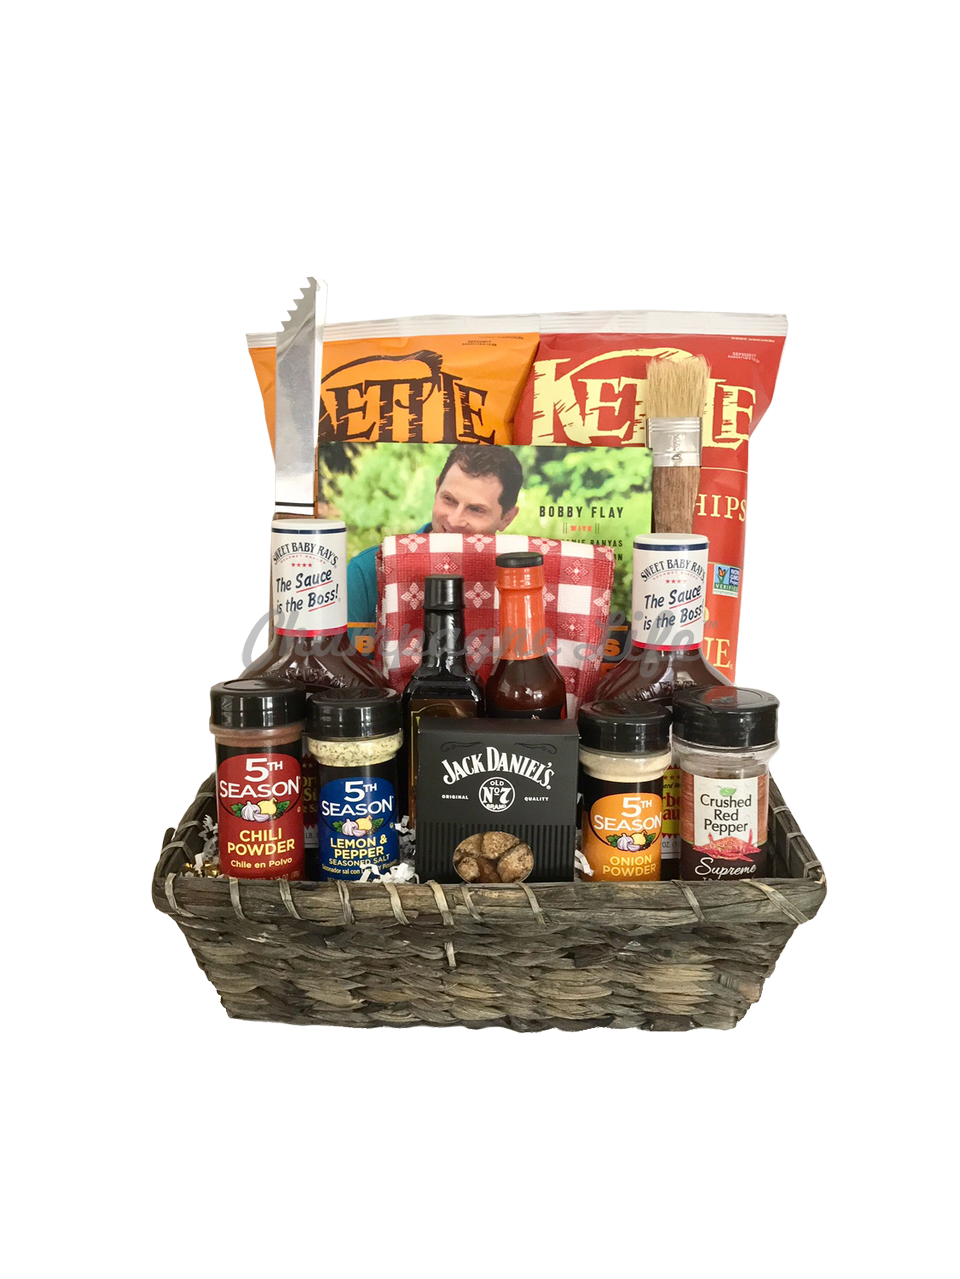 Ultimate bbq lovers gift basket Gifts for kitchen lovers